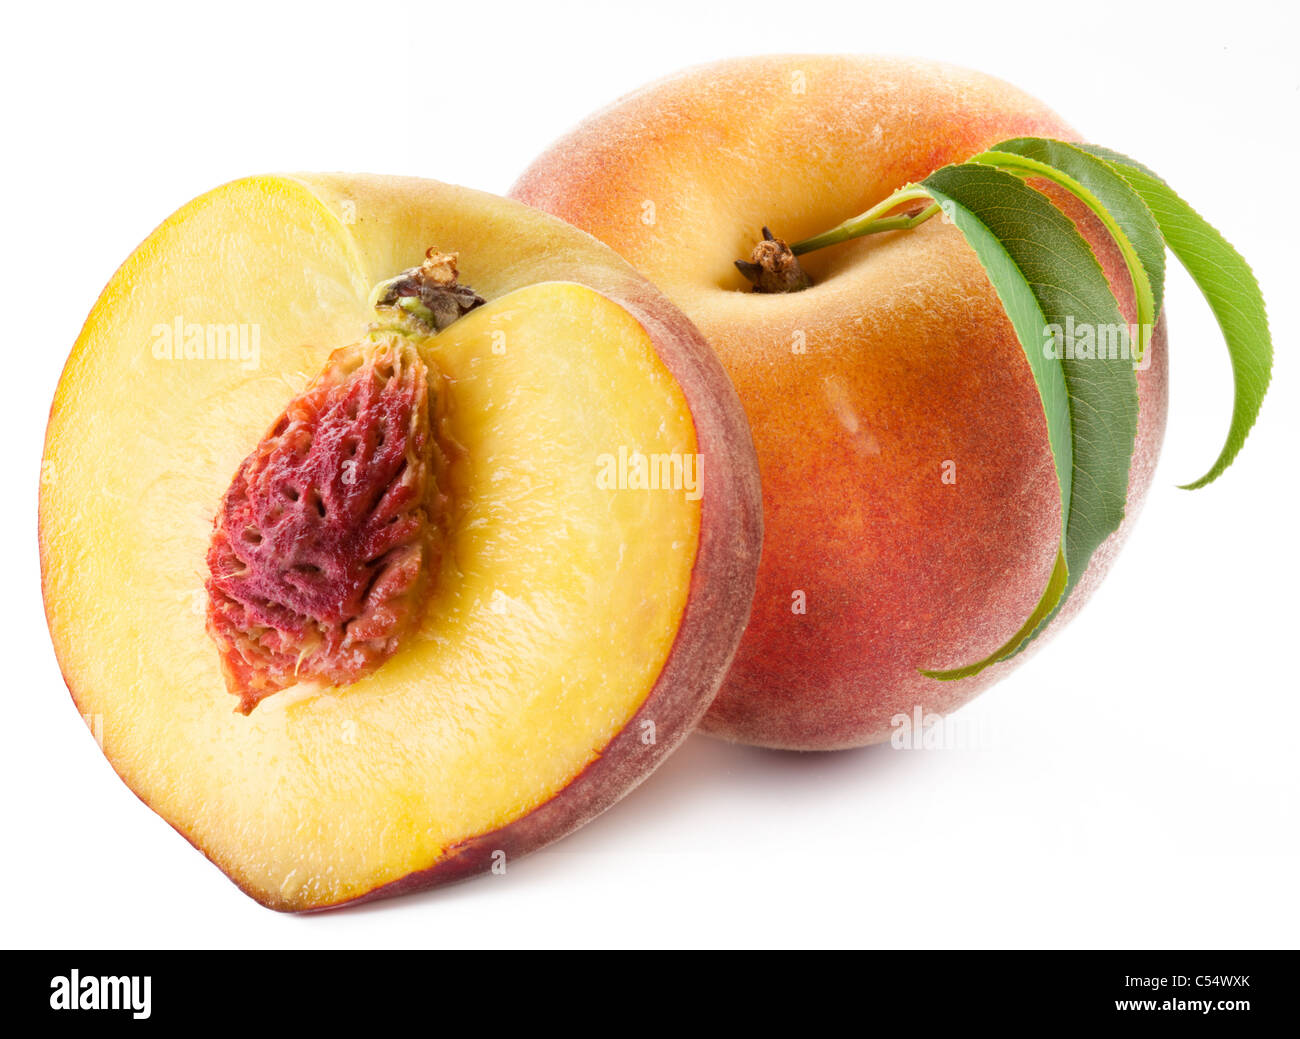 Ripe peach with leaves isolated on a white background. - Stock Image